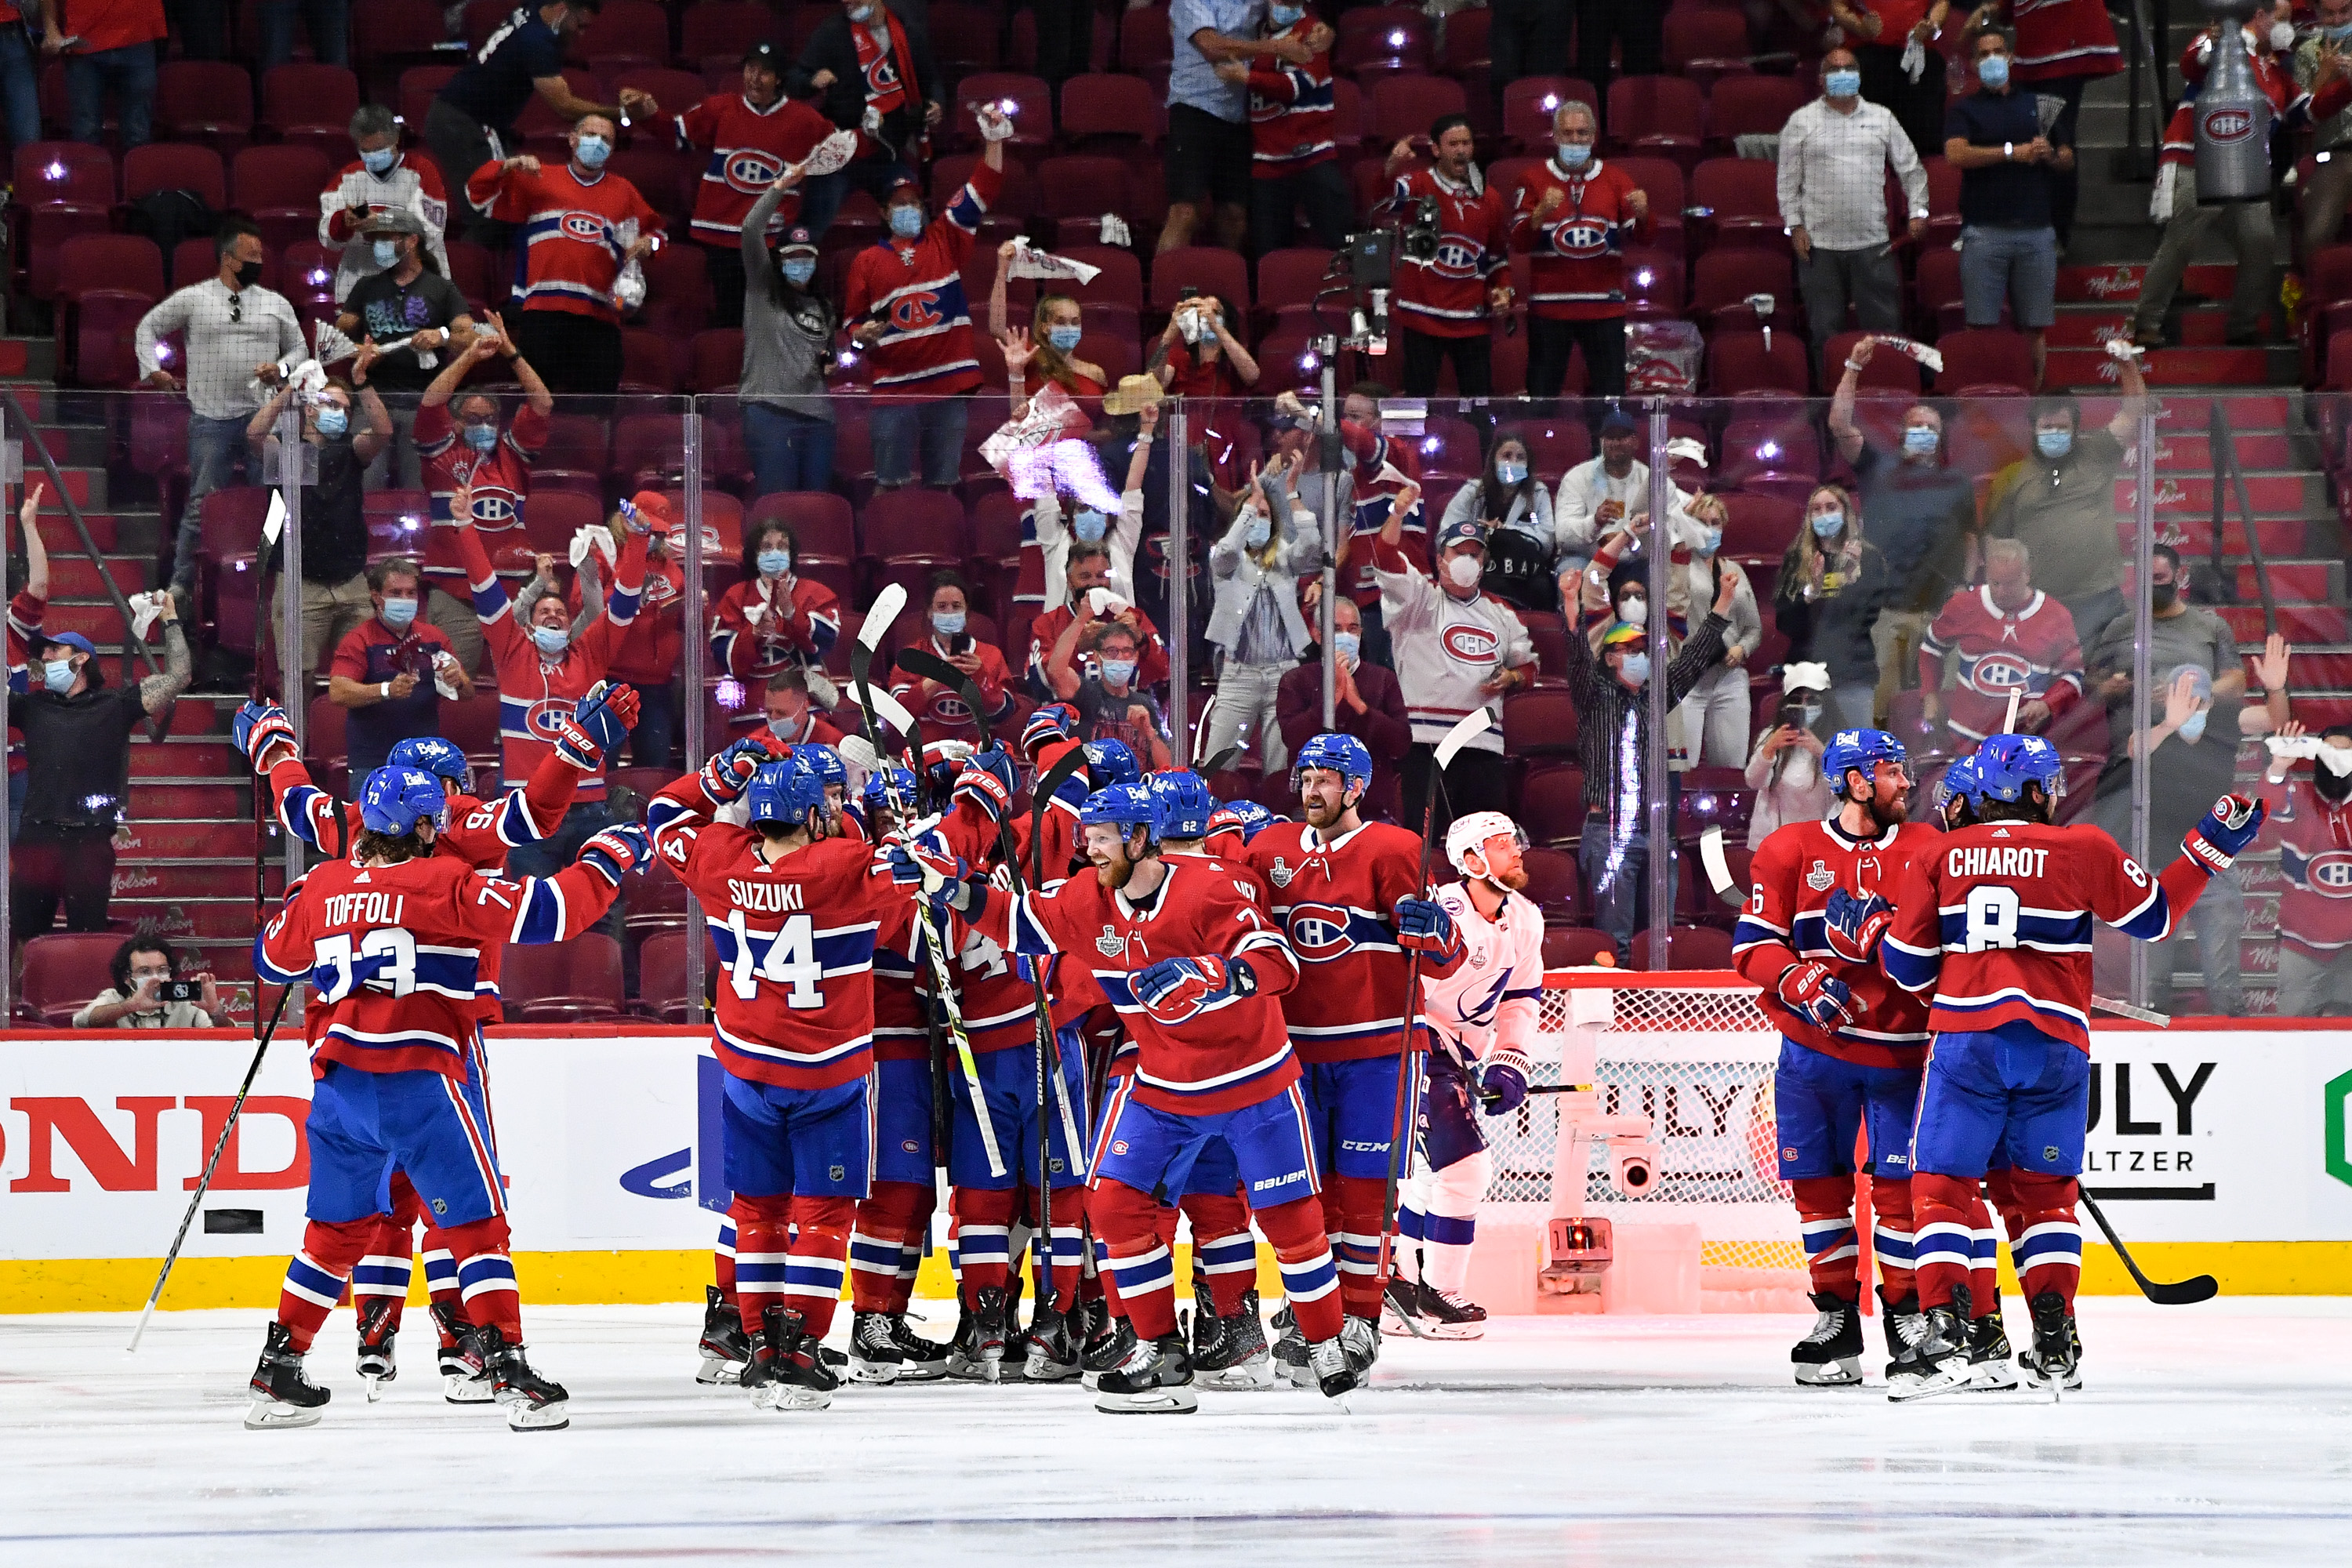 Montreal Canadiens celebrate after defeating the Tampa Bay Lightning in Game 4 of the Stanley Cup Final of the 2021 Stanley Cup Playoffs at the Bell Centre on July 5, 2021 in Montreal, Quebec, Canada.